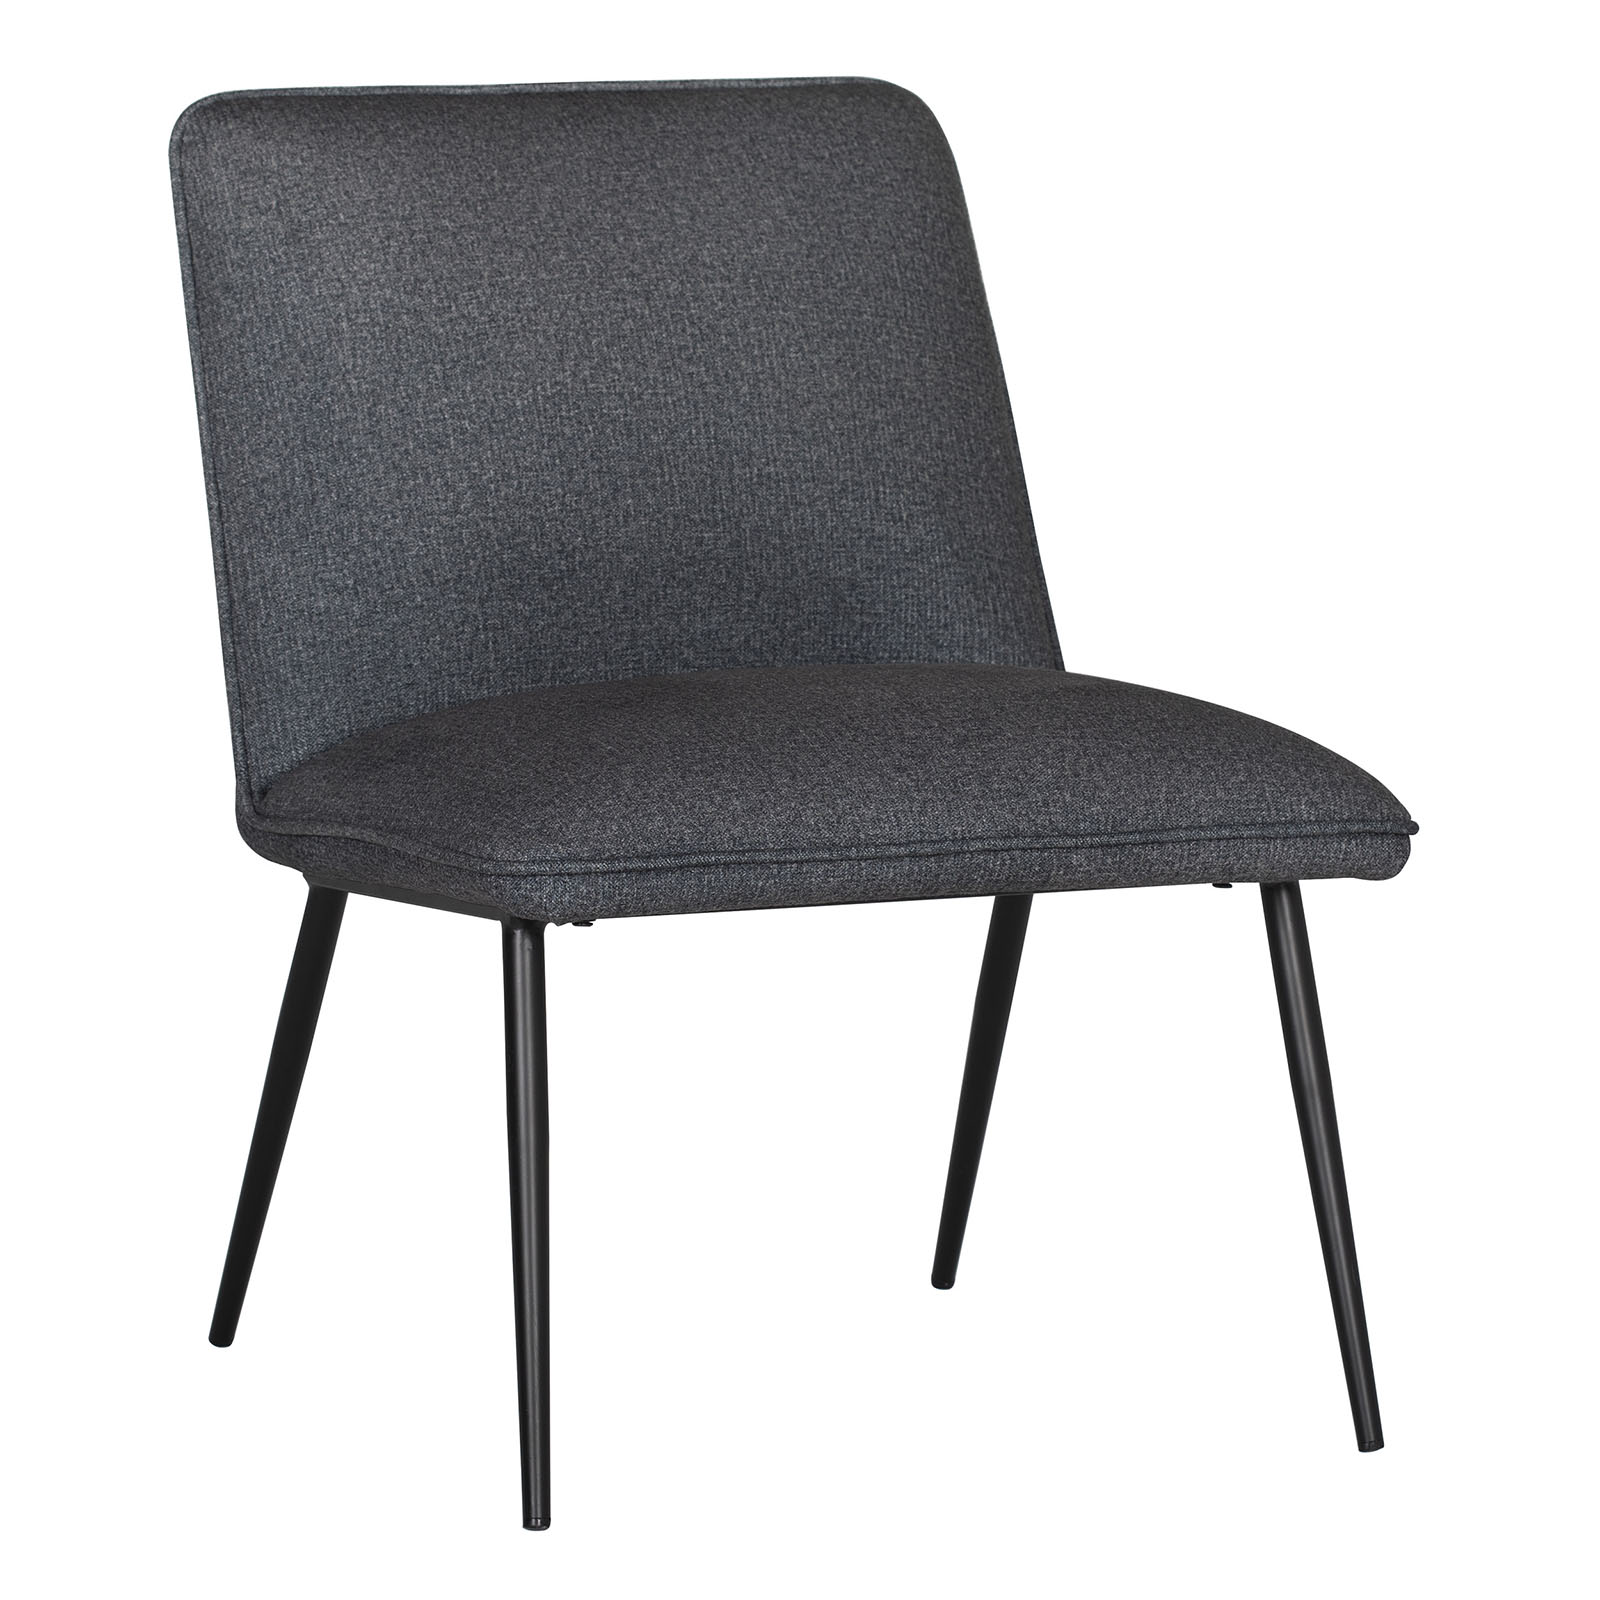 70205 Niche Accent Chair